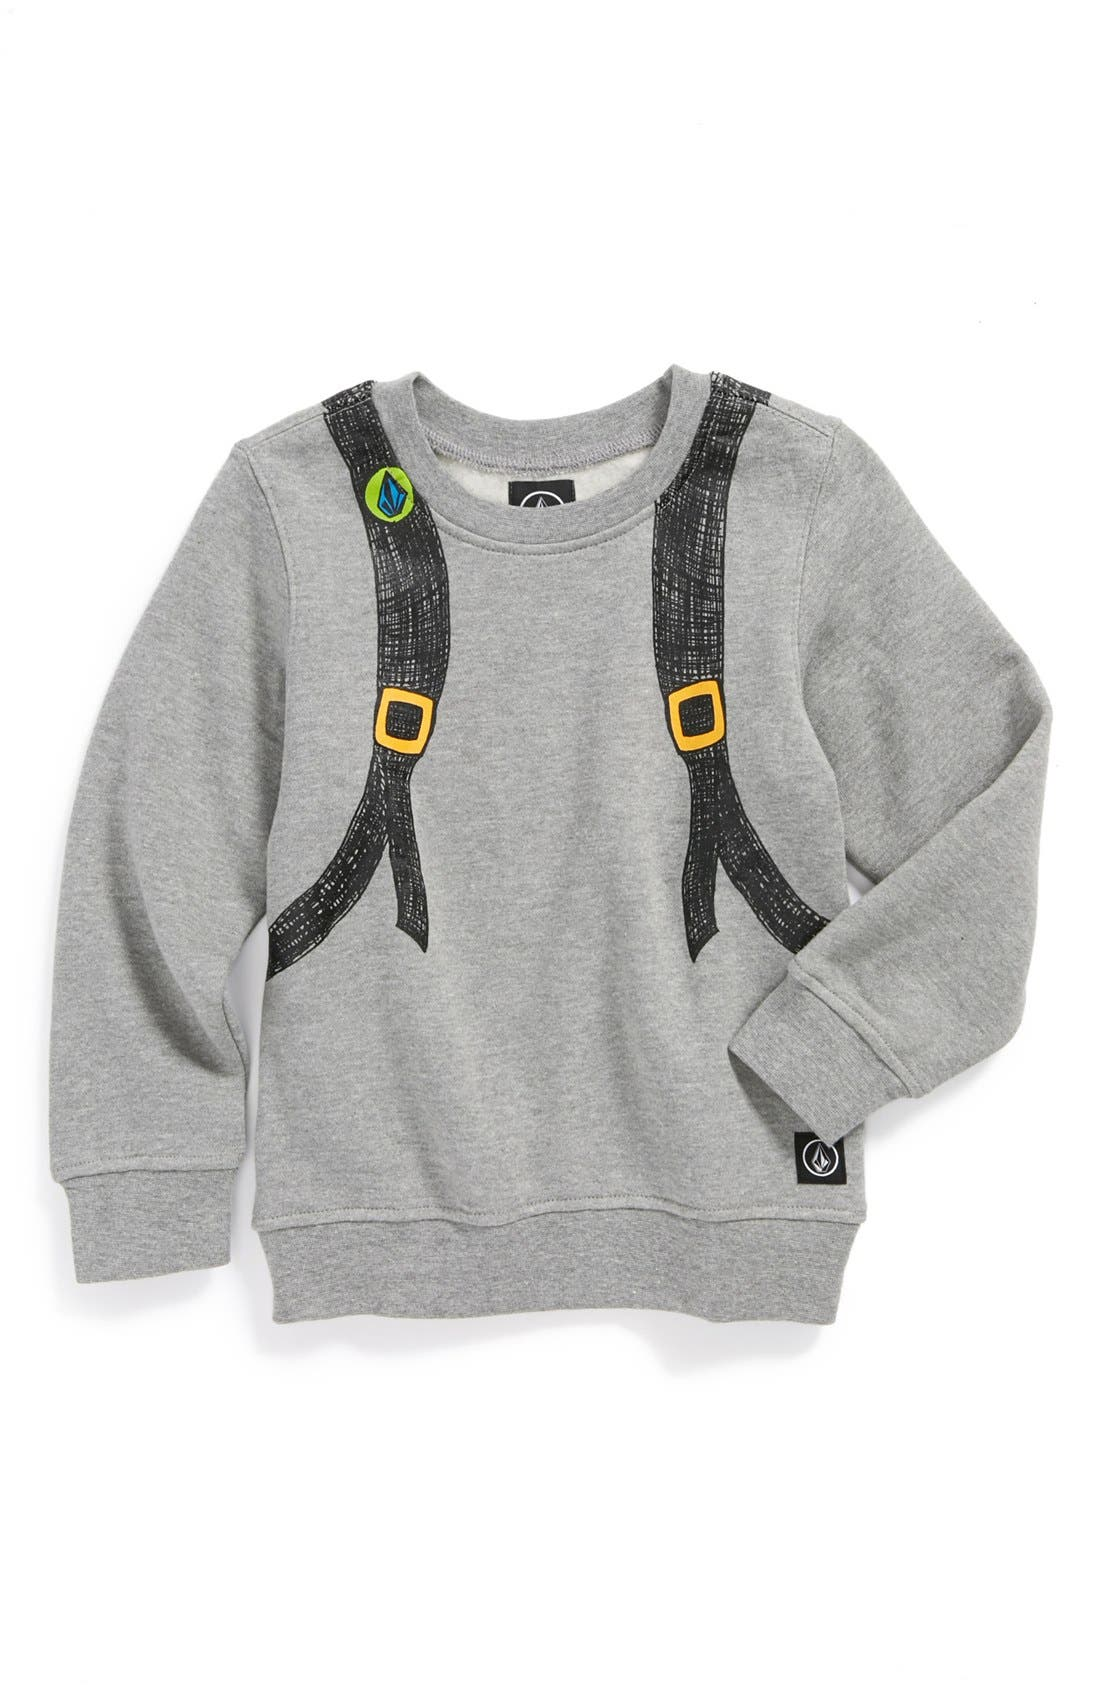 Main Image - Volcom 'Reconeryo' Sweatshirt (Little Boys)